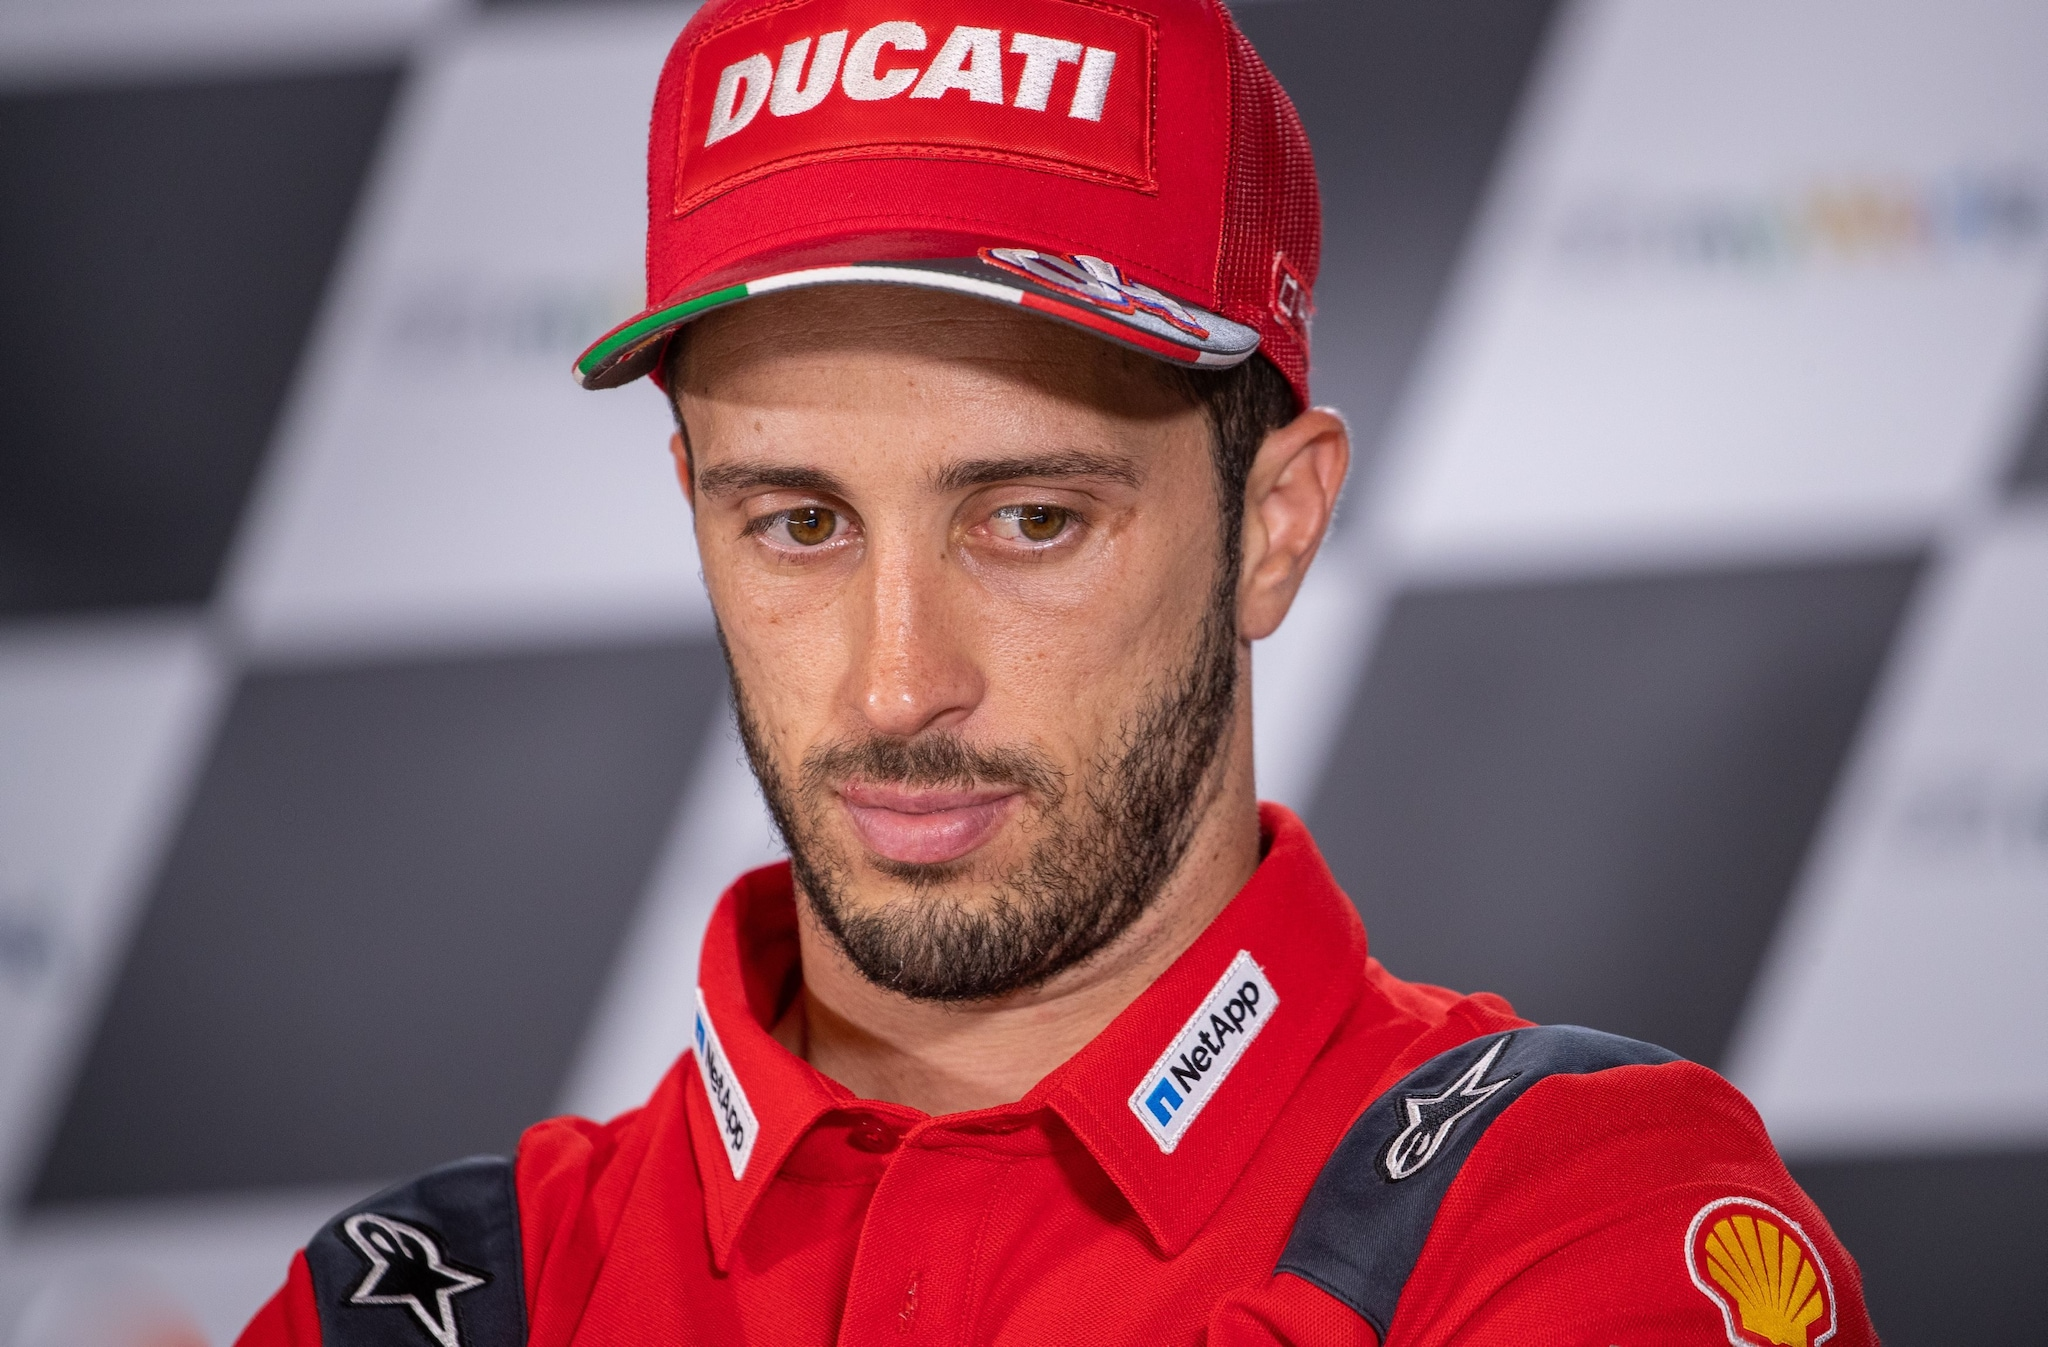 Andrea Dovizioso / Getty